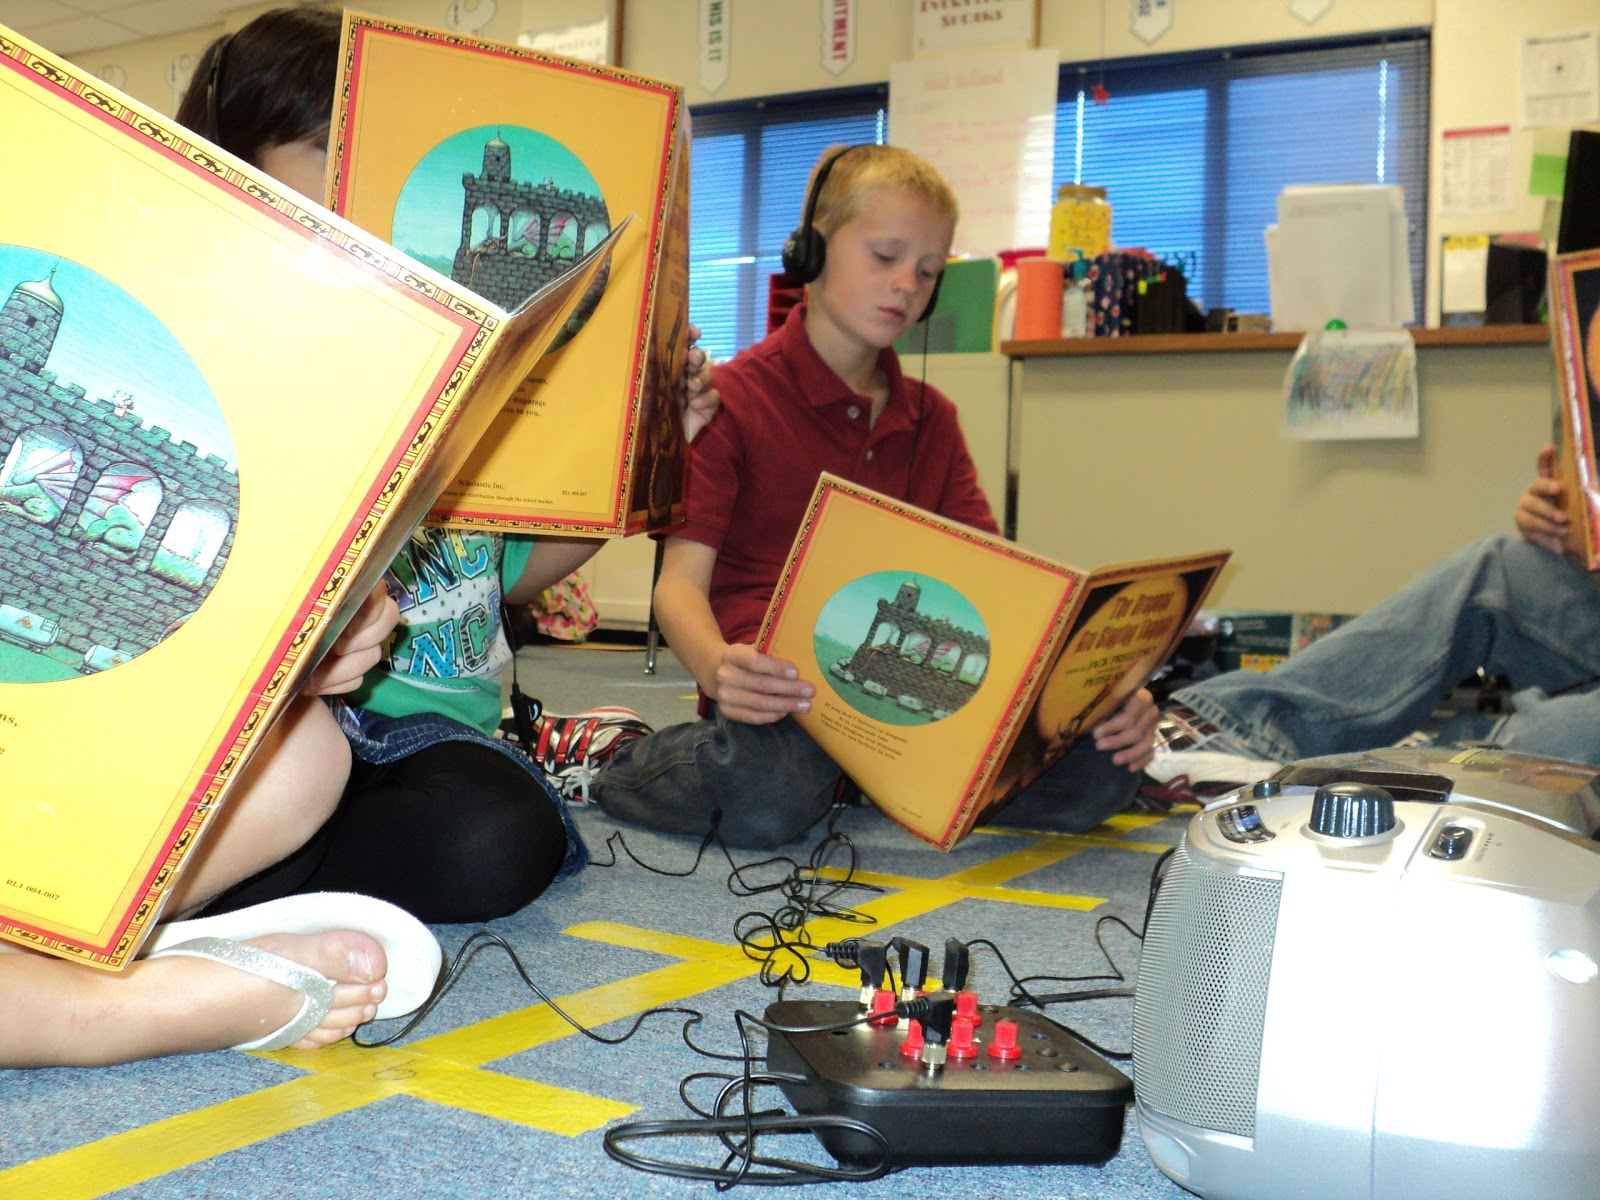 School Listening Centers And Stations With Head Phones